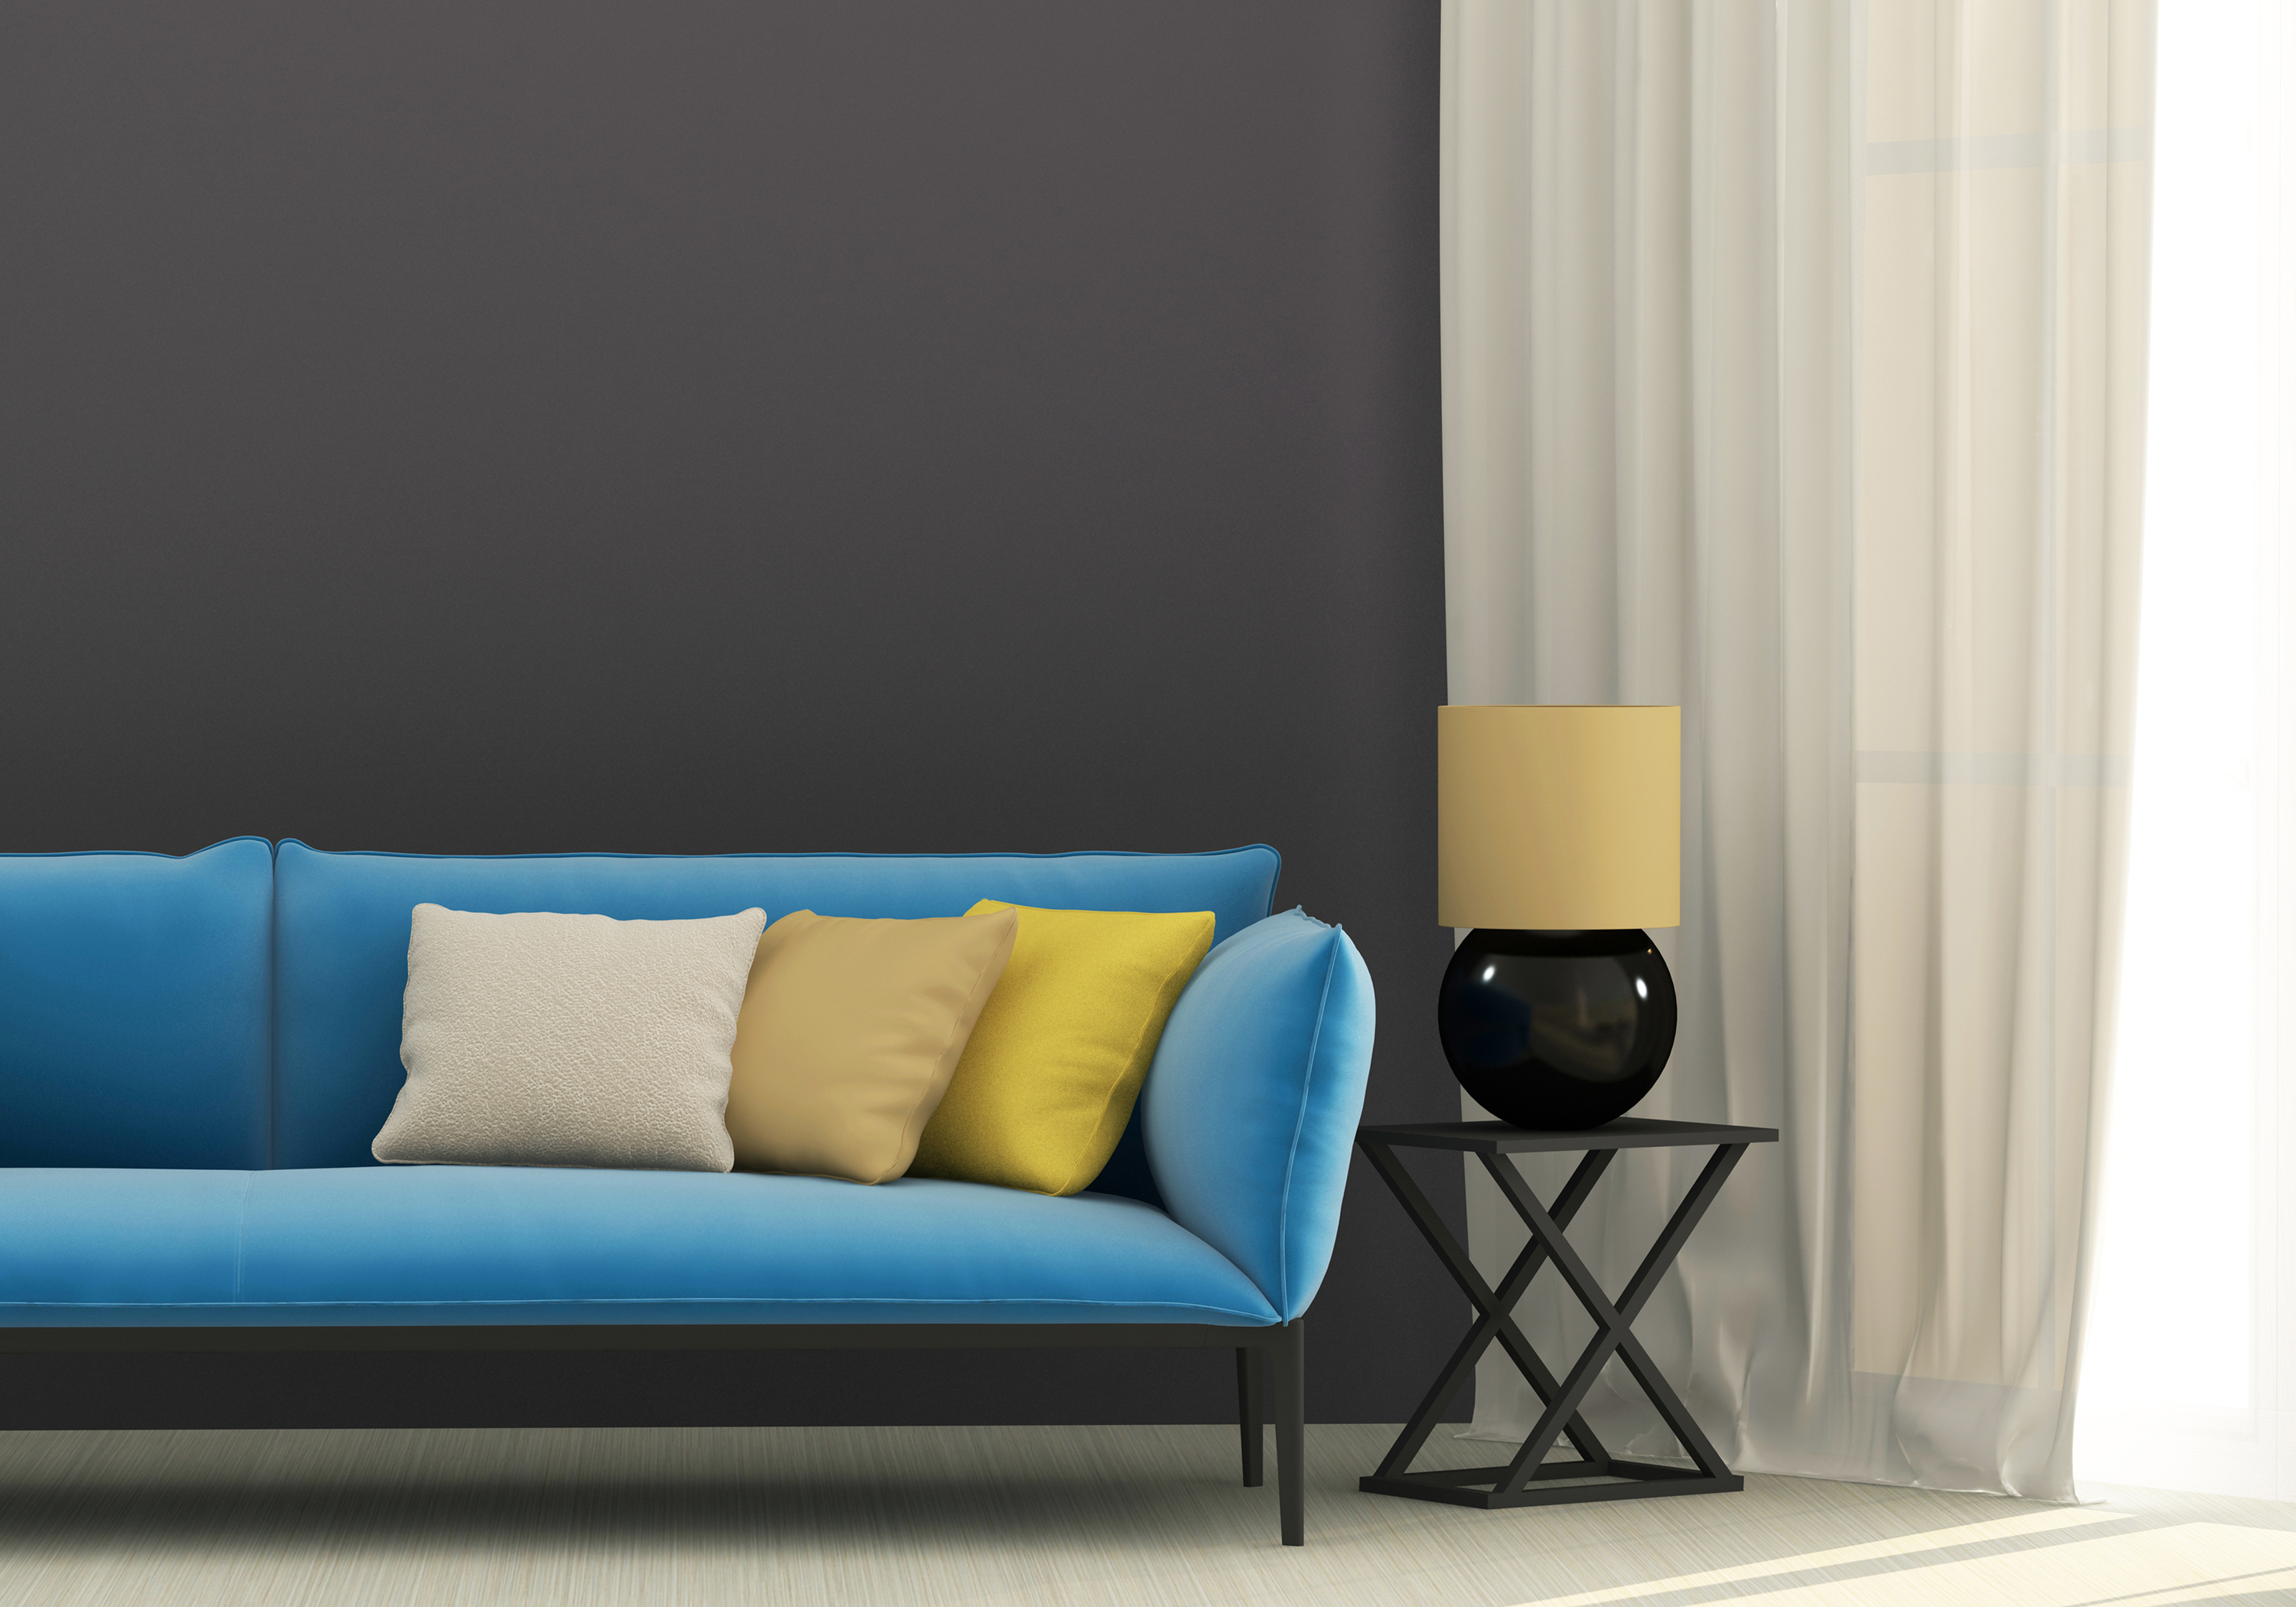 Table lamp and sofa 55563